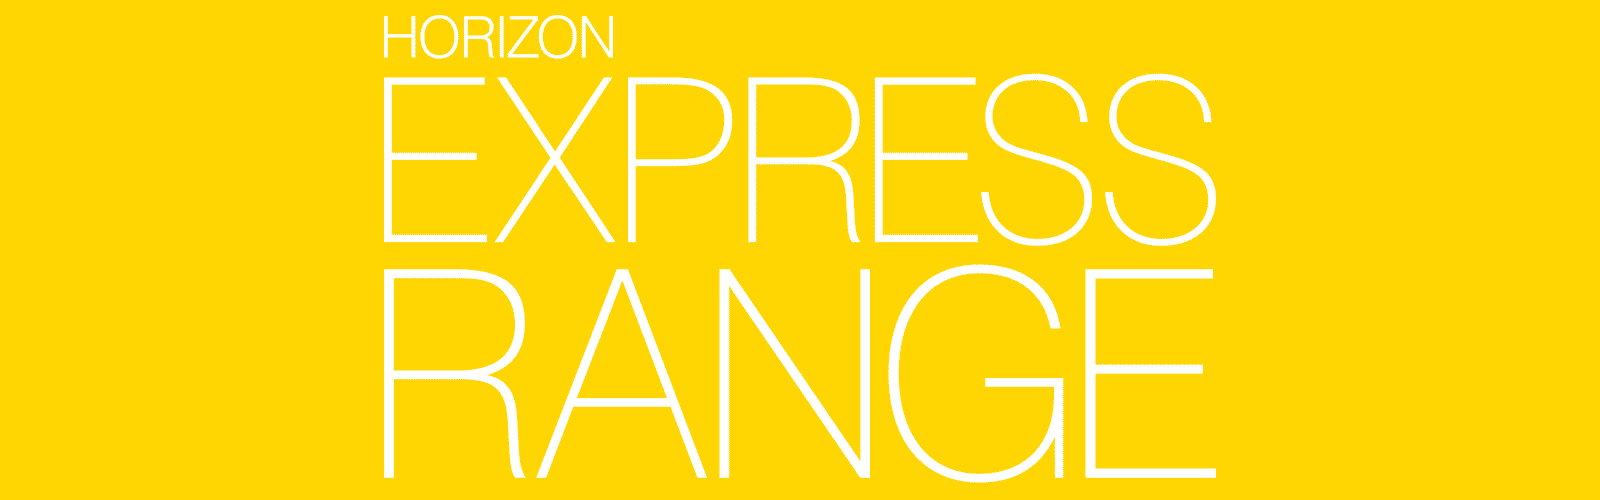 Horizon Express Range